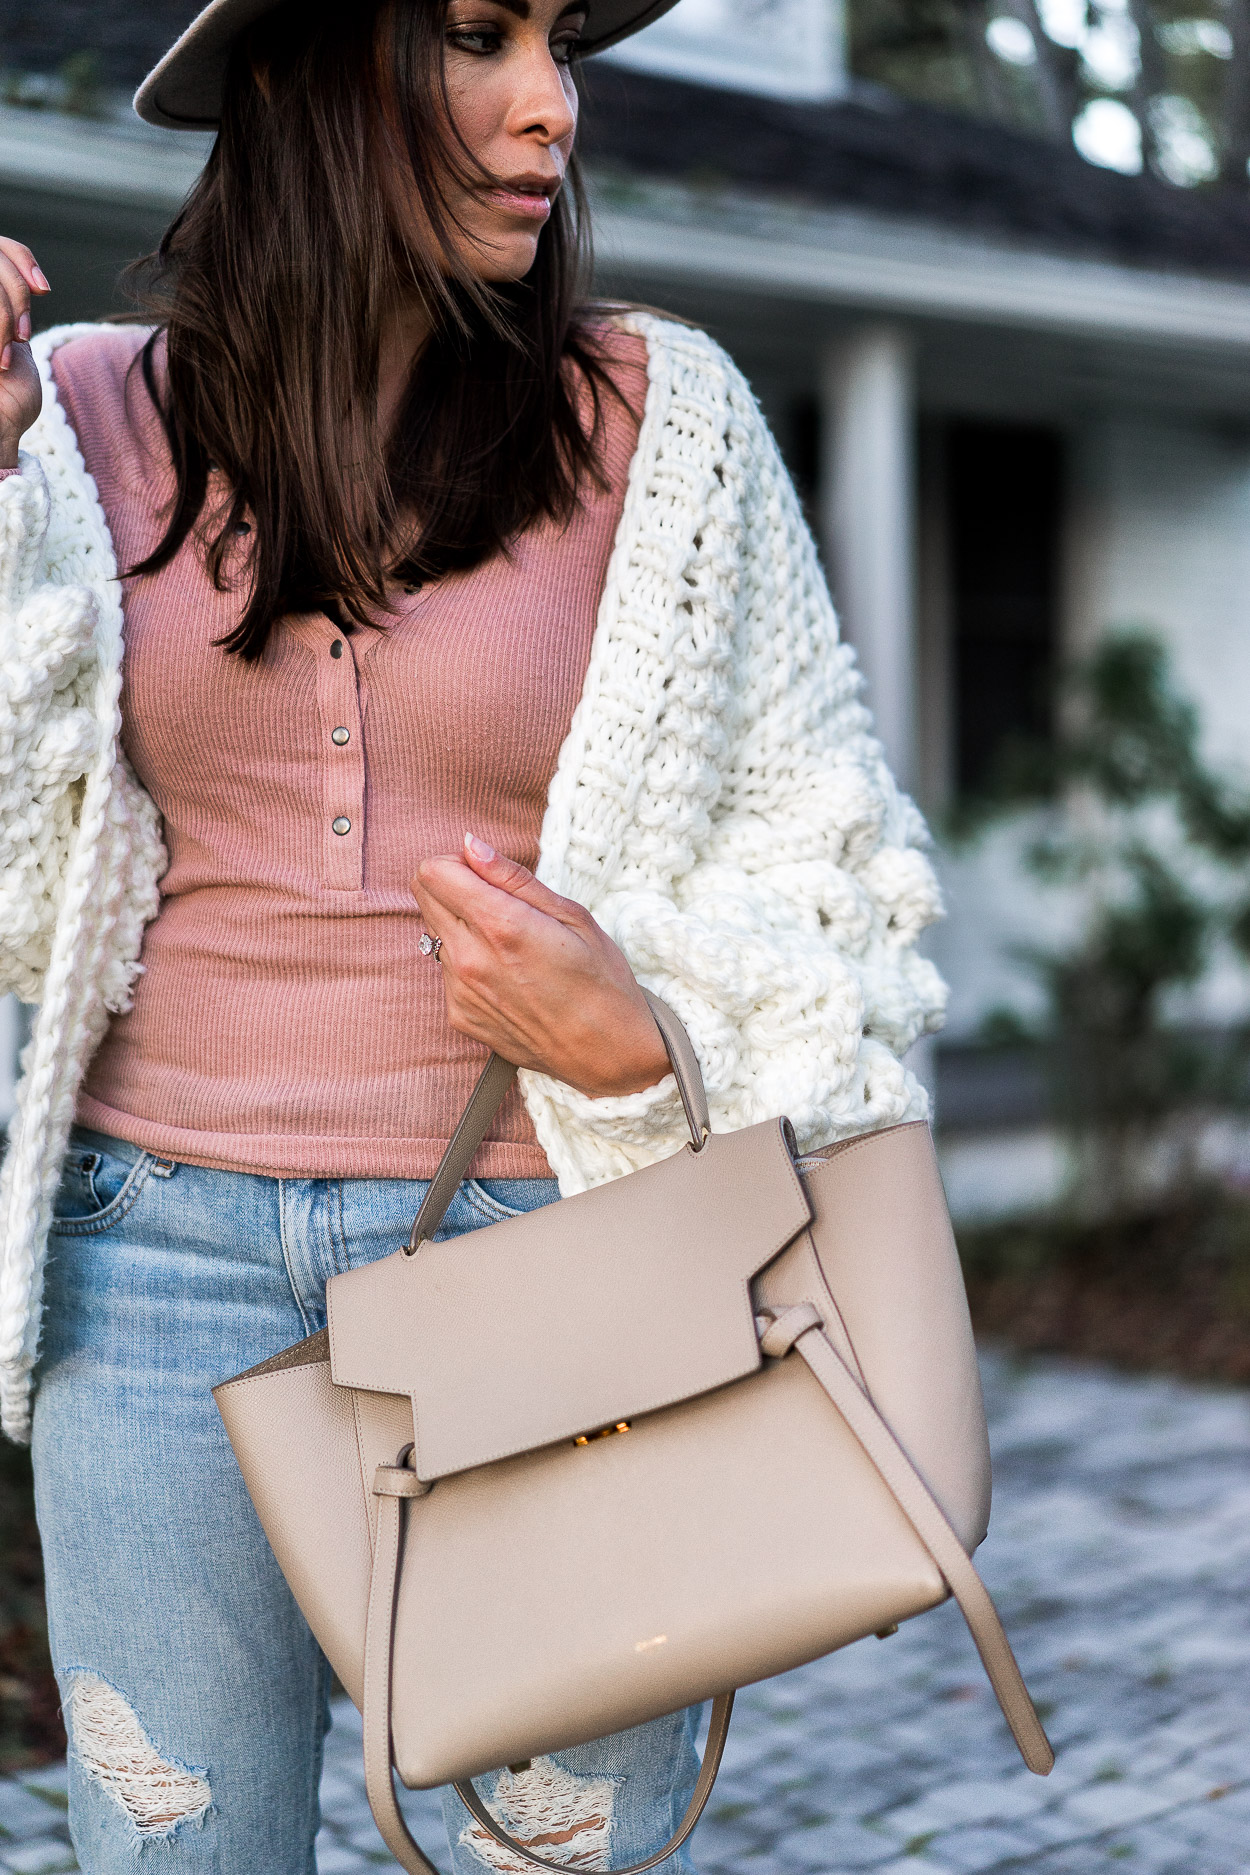 Amanda styles blush henley tee with white chunky sweater and carries her Celine belt bag